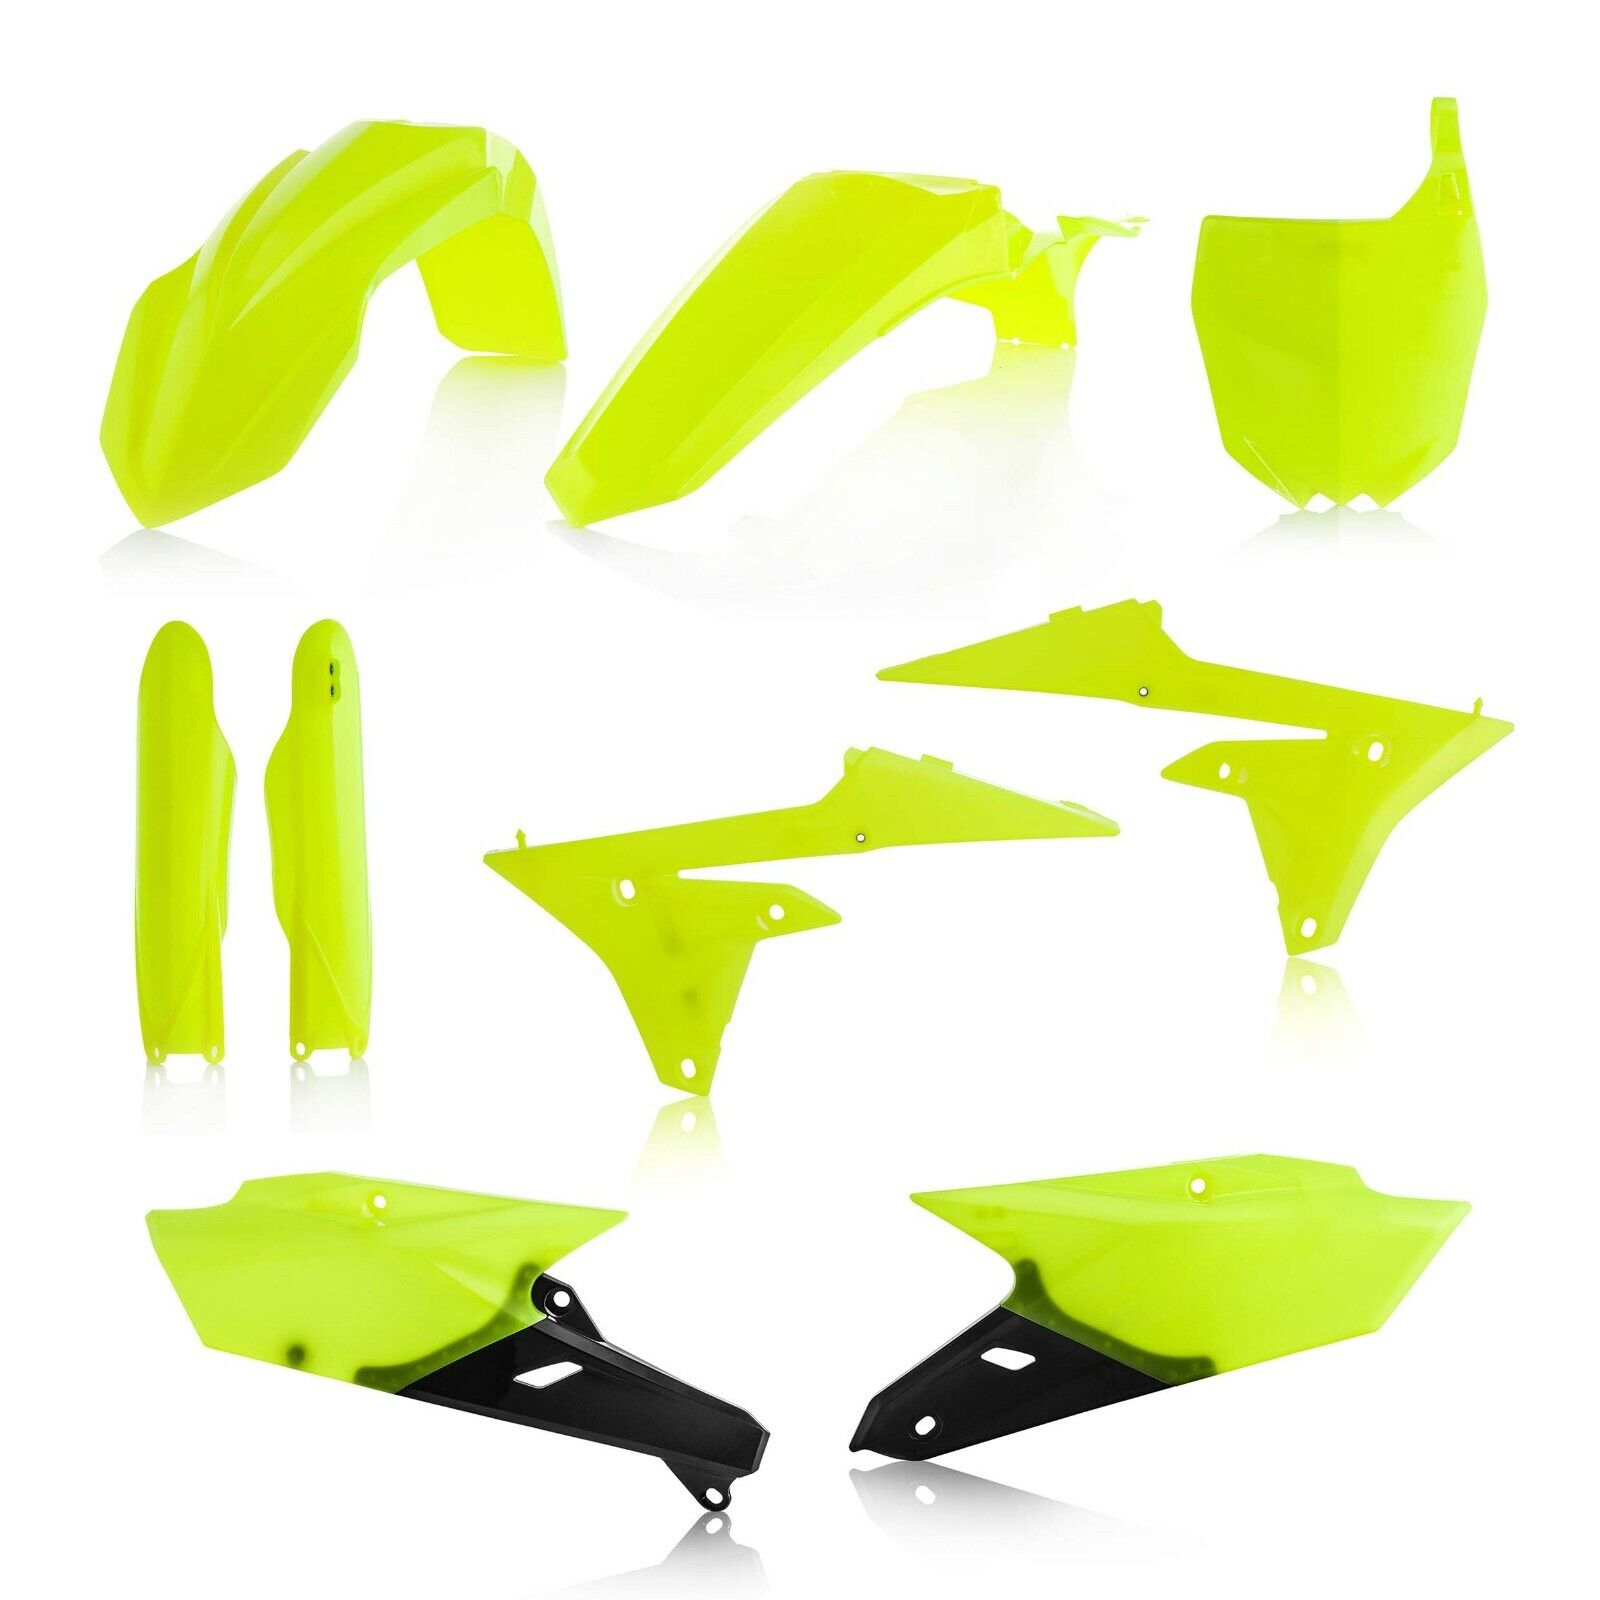 Yamaha YZF450 2014 2015 2016 2017 Neon Yellow Plastic Kit